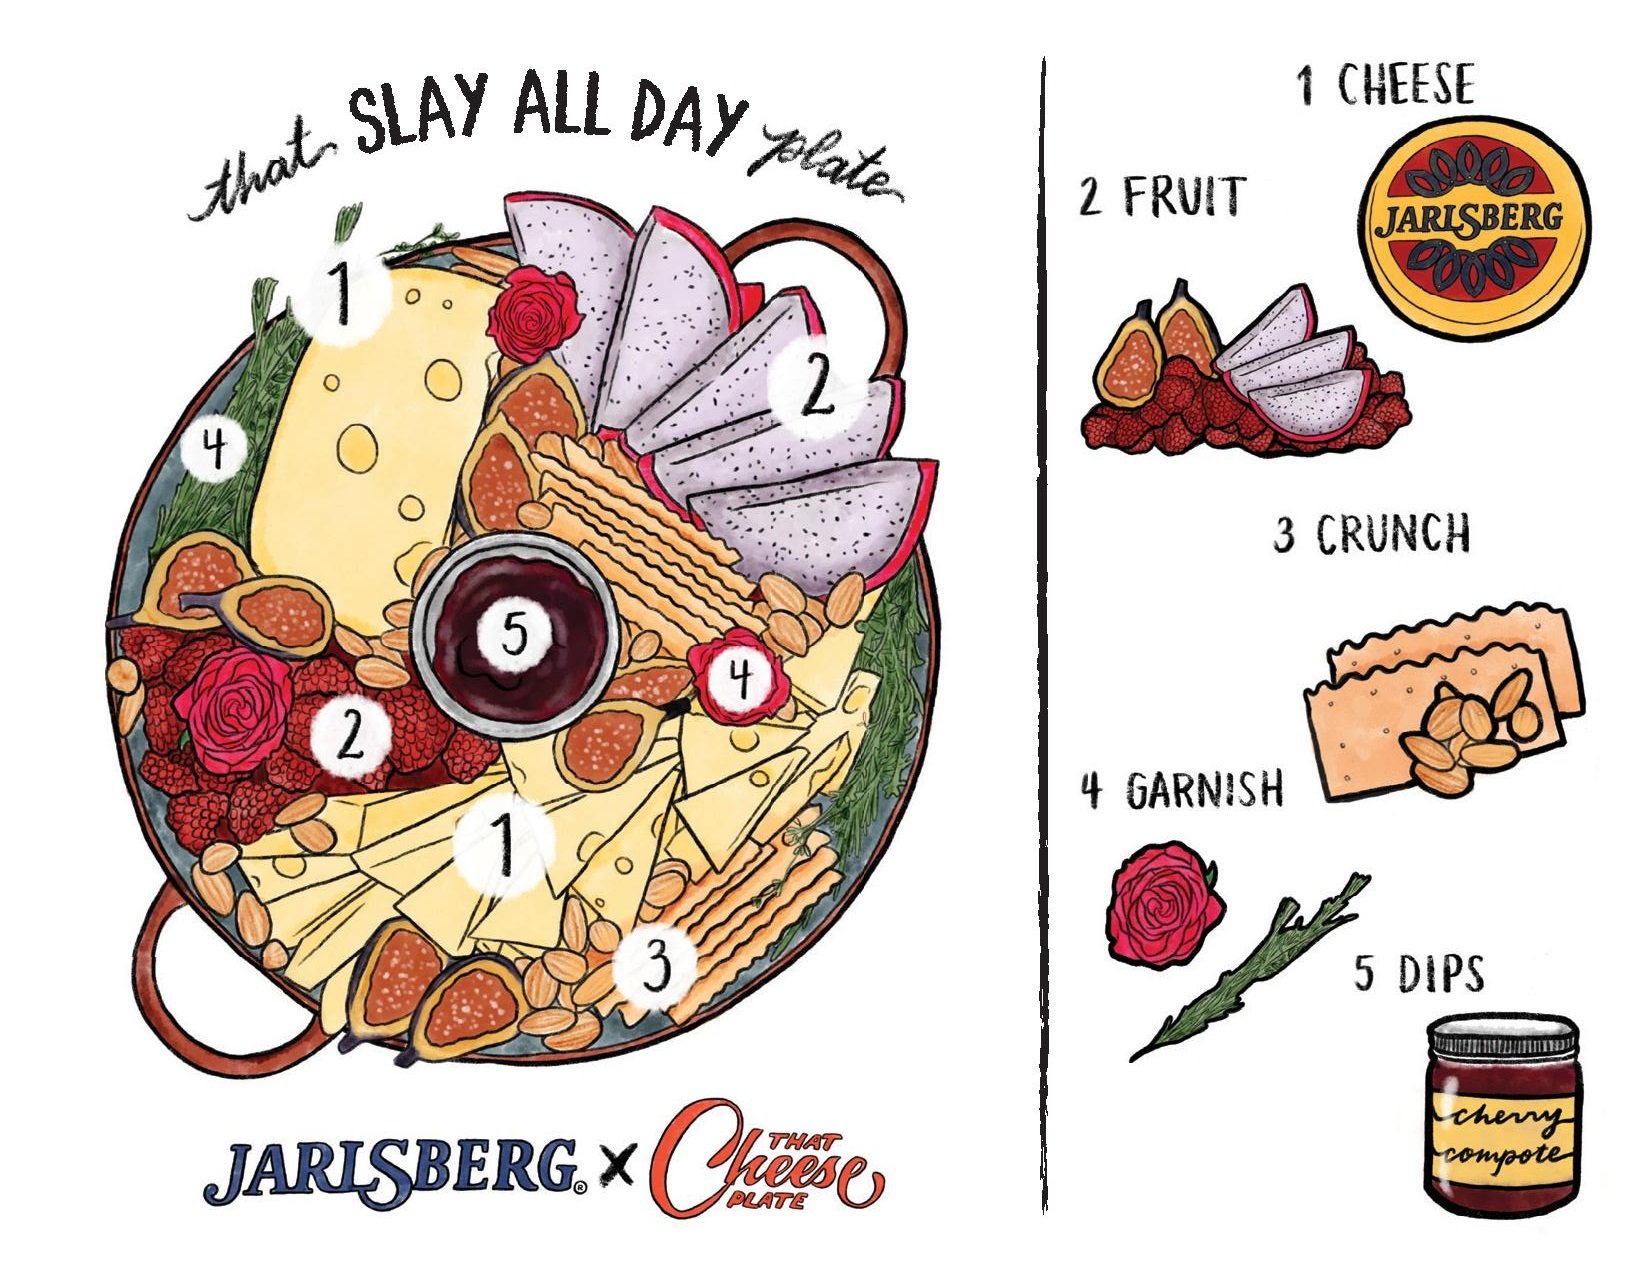 Jarlsberg That Slay All Day Plate Cheese by Numbers